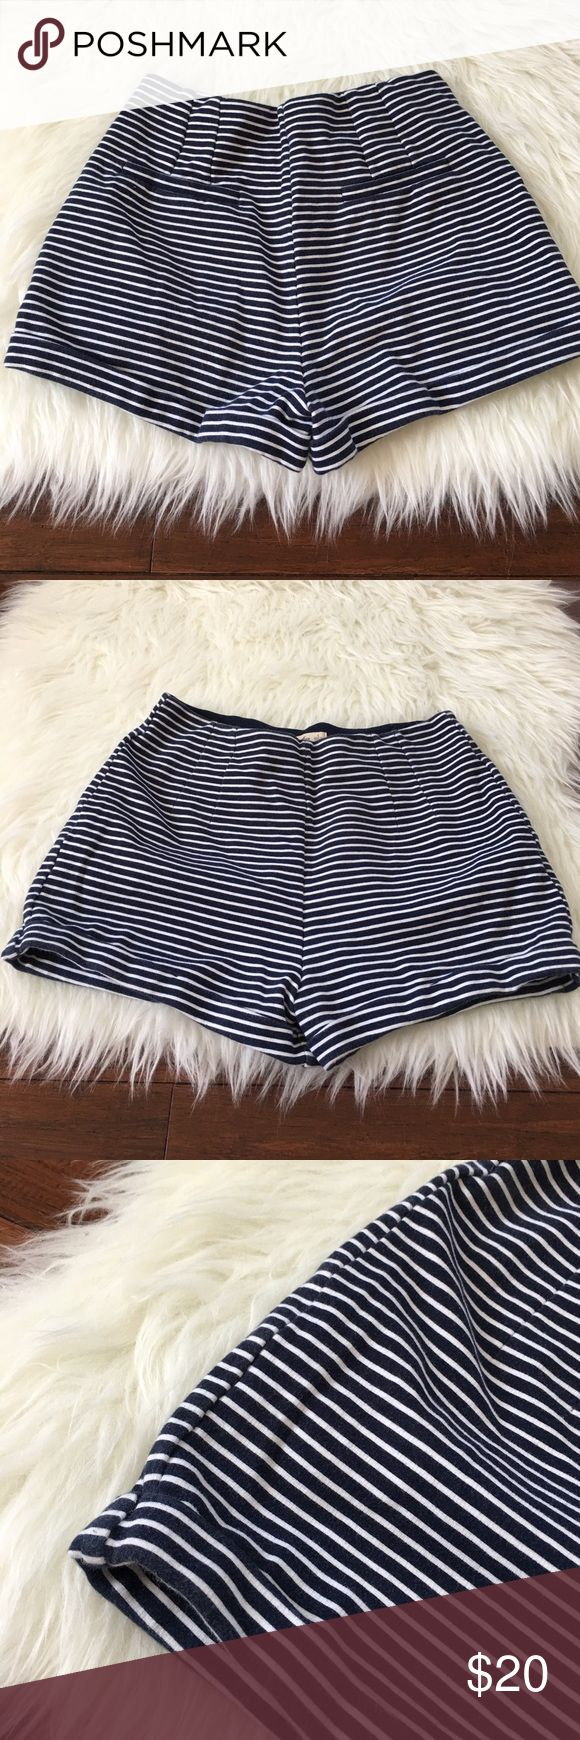 "Hollister High Waist Navy Striped Nautical Shorts Excellent used condition. No stains or holes. High waisted. 10.5"" long. 2"" Inseam. Size small. 83% cotton, 15% polyester, 2% elastane. Very stretchy. CW012 Hollister Shorts"